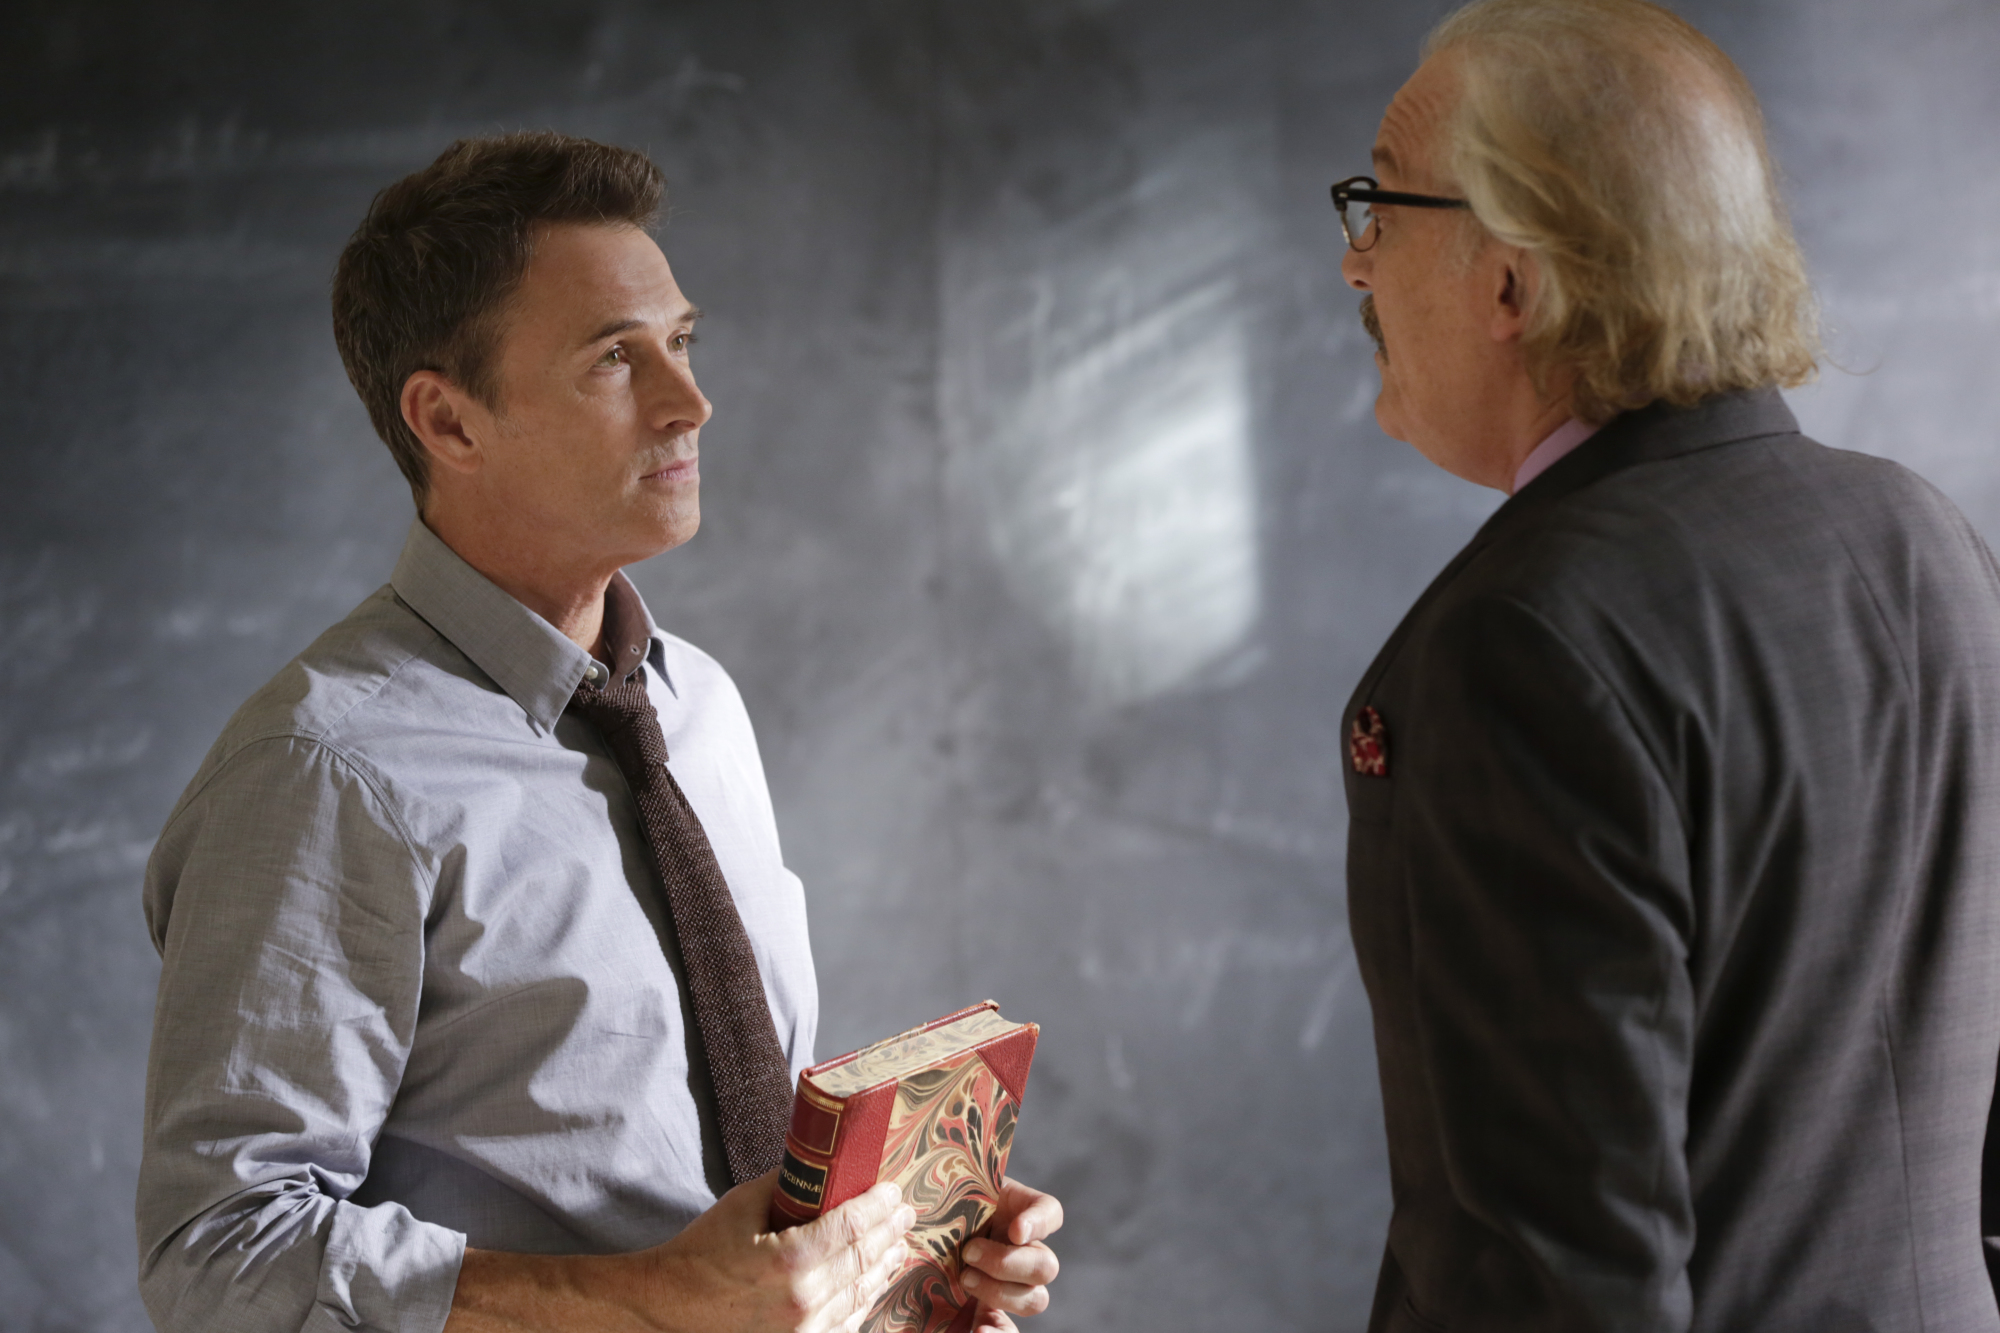 14. Tim Daly earned an Emmy Award nomination for his work on